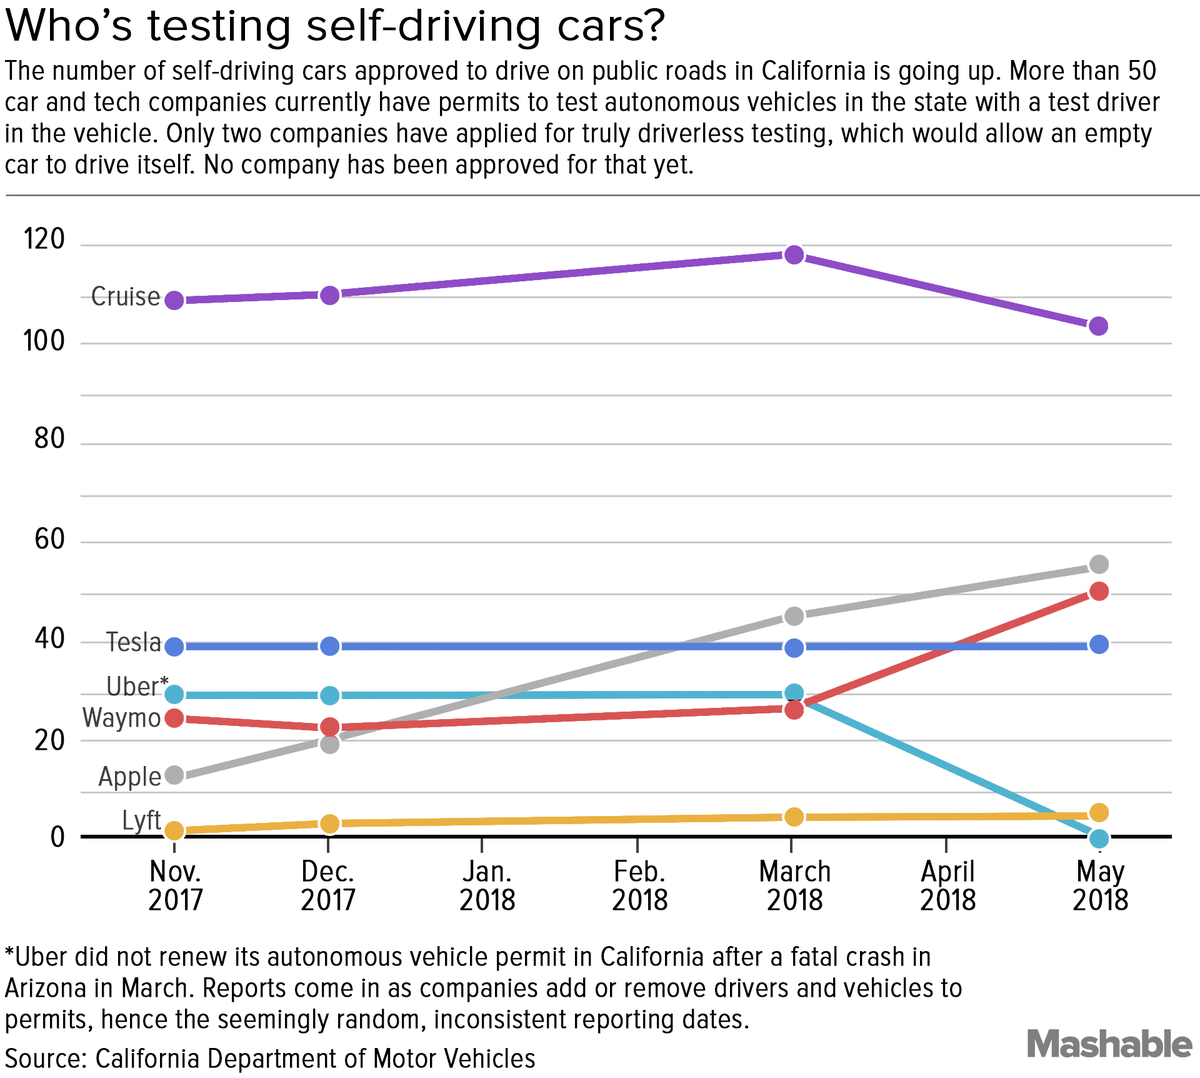 Here's the aspect of self-driving car testing that's not dominated by Apple or Google